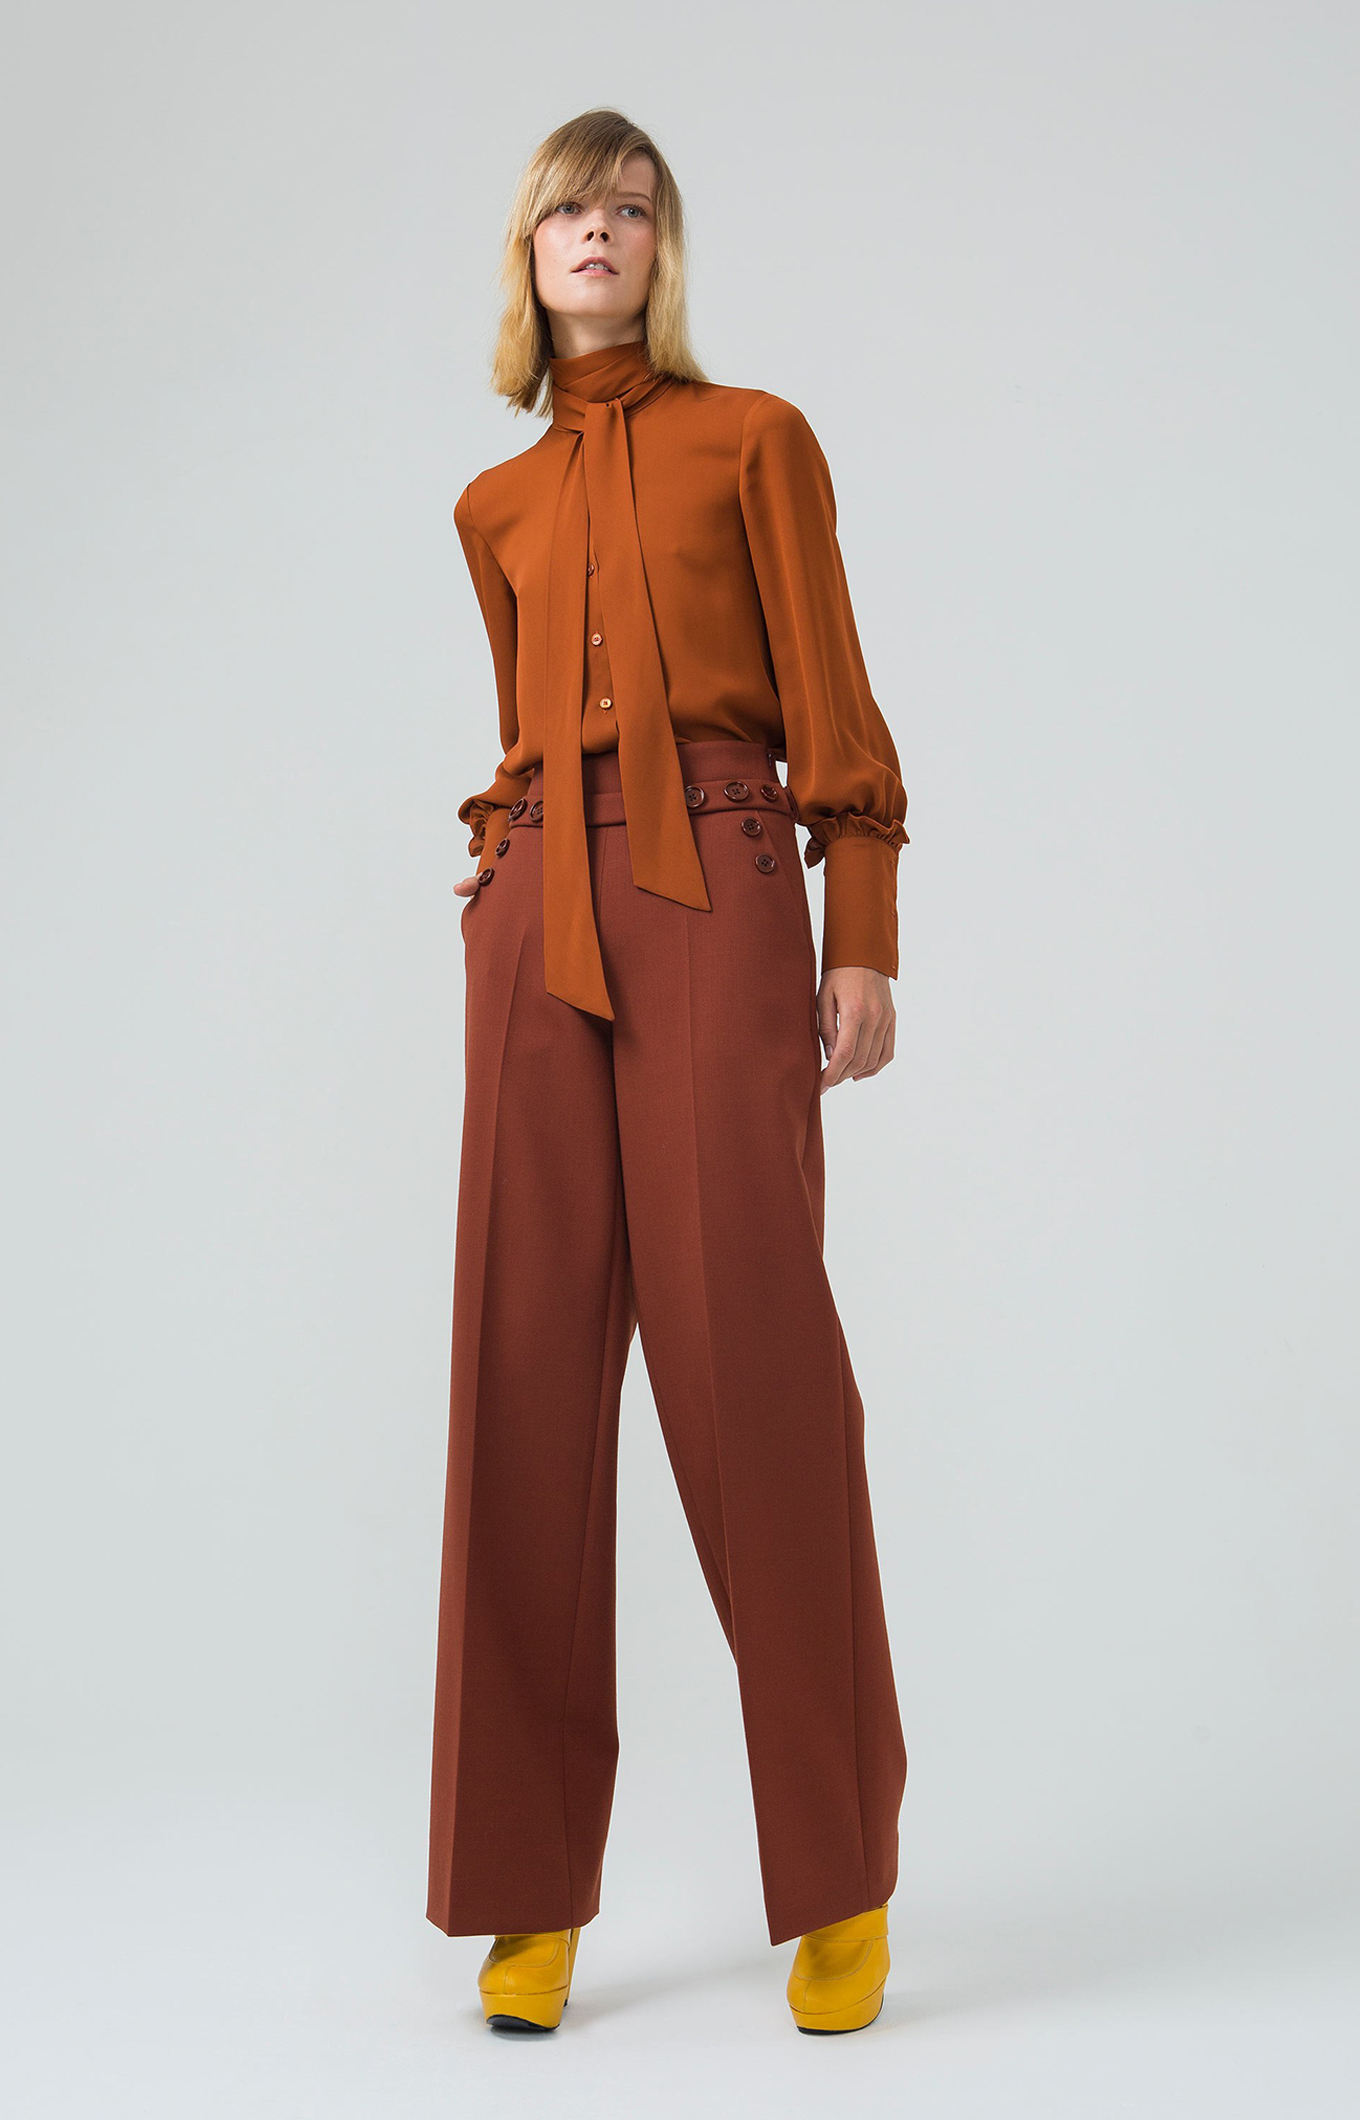 Dice Kayek<br>Pre-Fall 2018 <br>Look 11